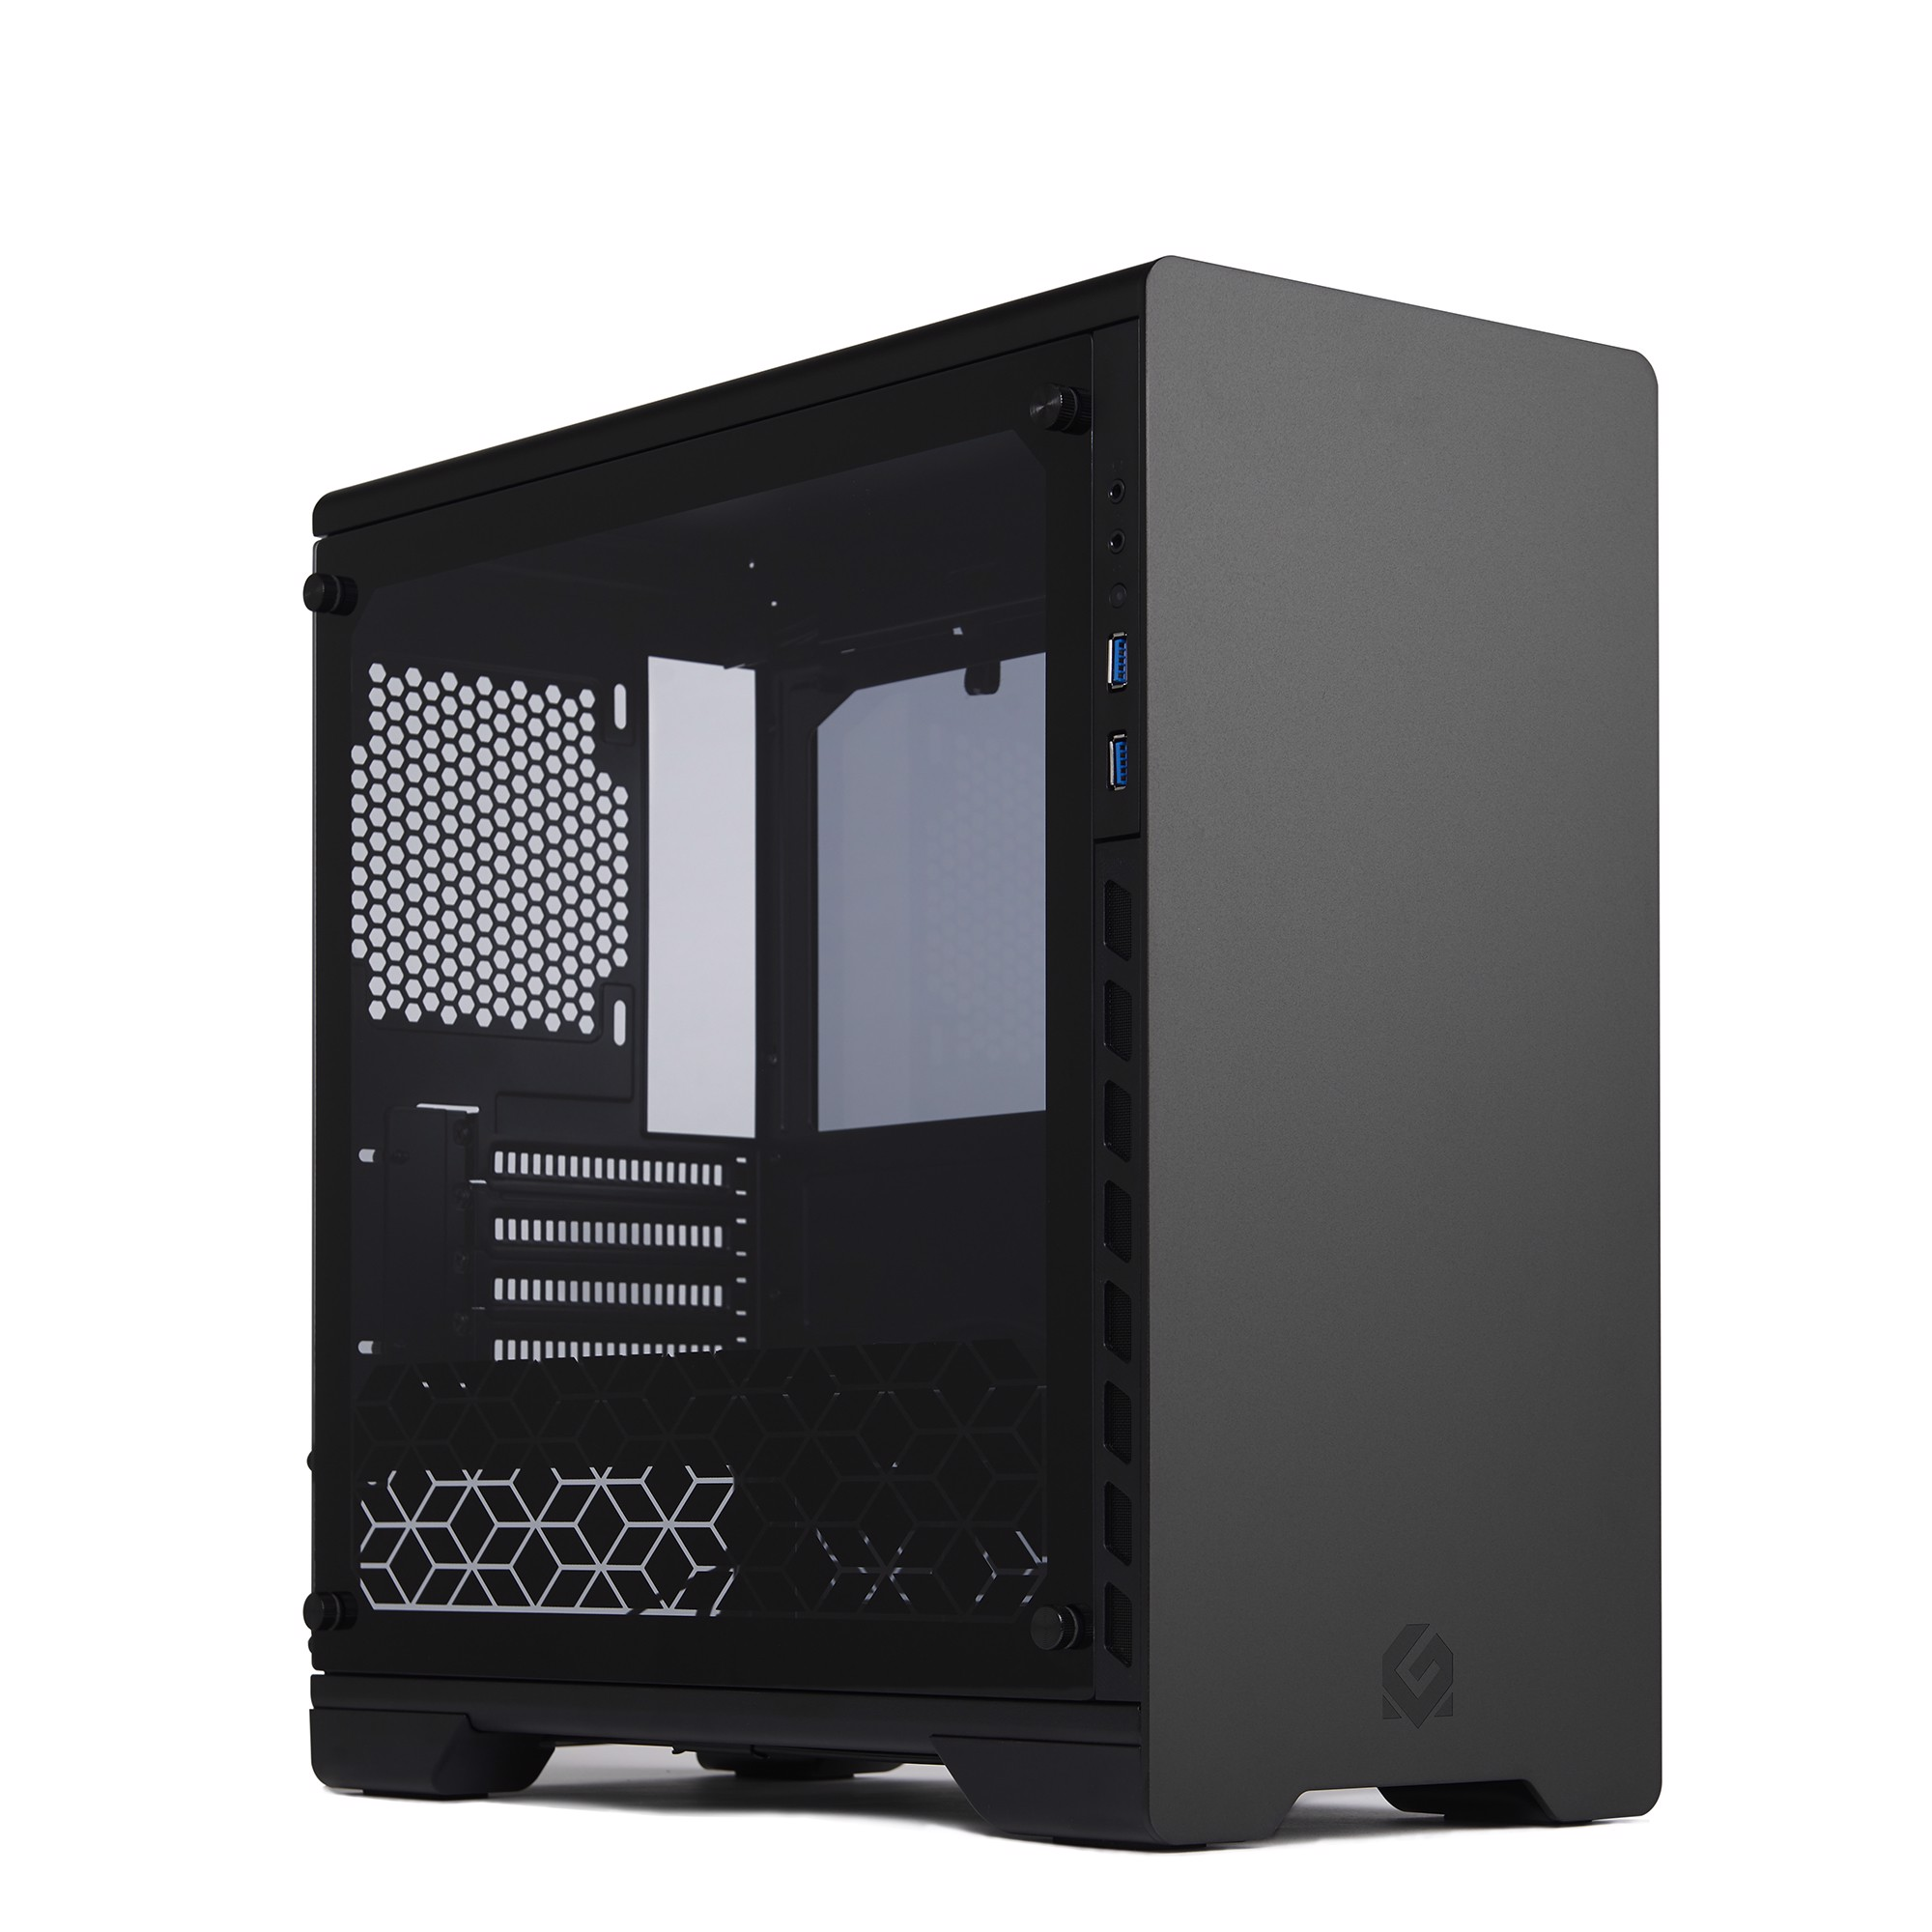 Metallic Gear Neo Micro ATX Black Tempered Glass - Full Aluminium Case